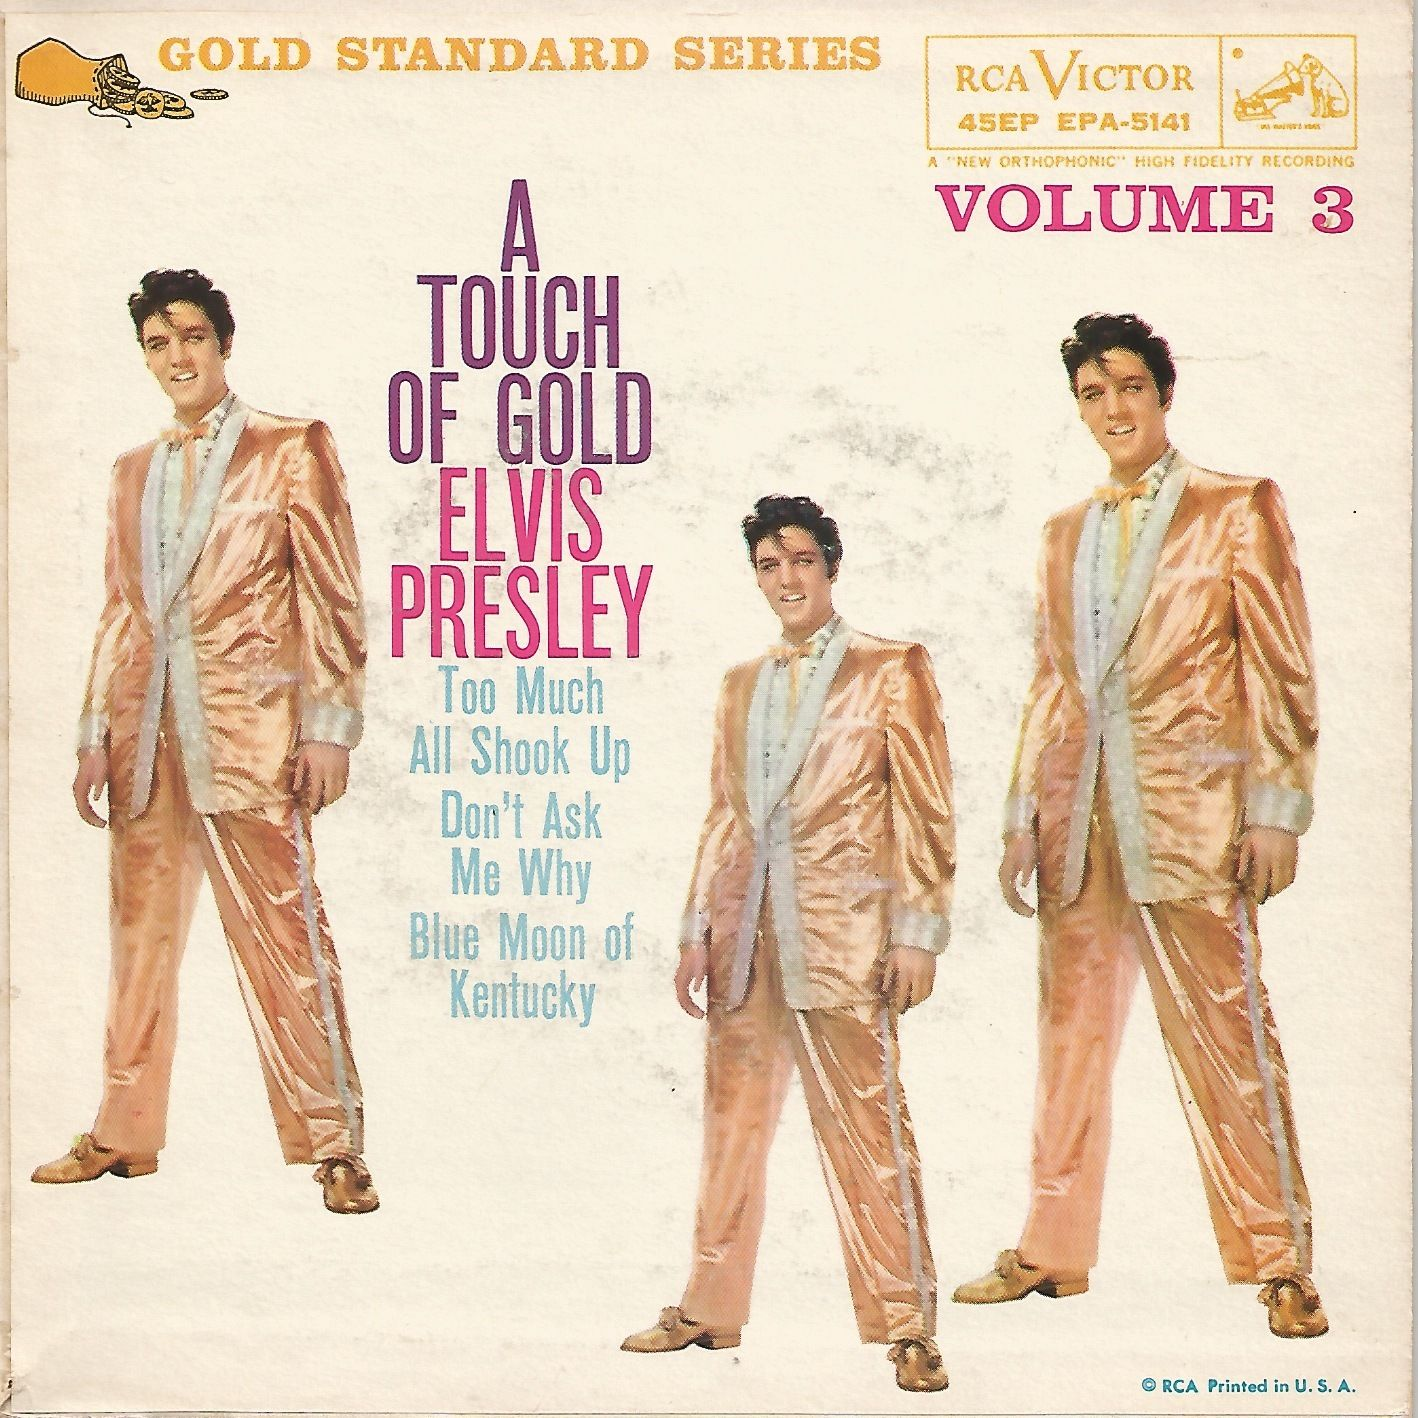 A TOUCH OF GOLD VOL. 3 Epa-5141ayss68